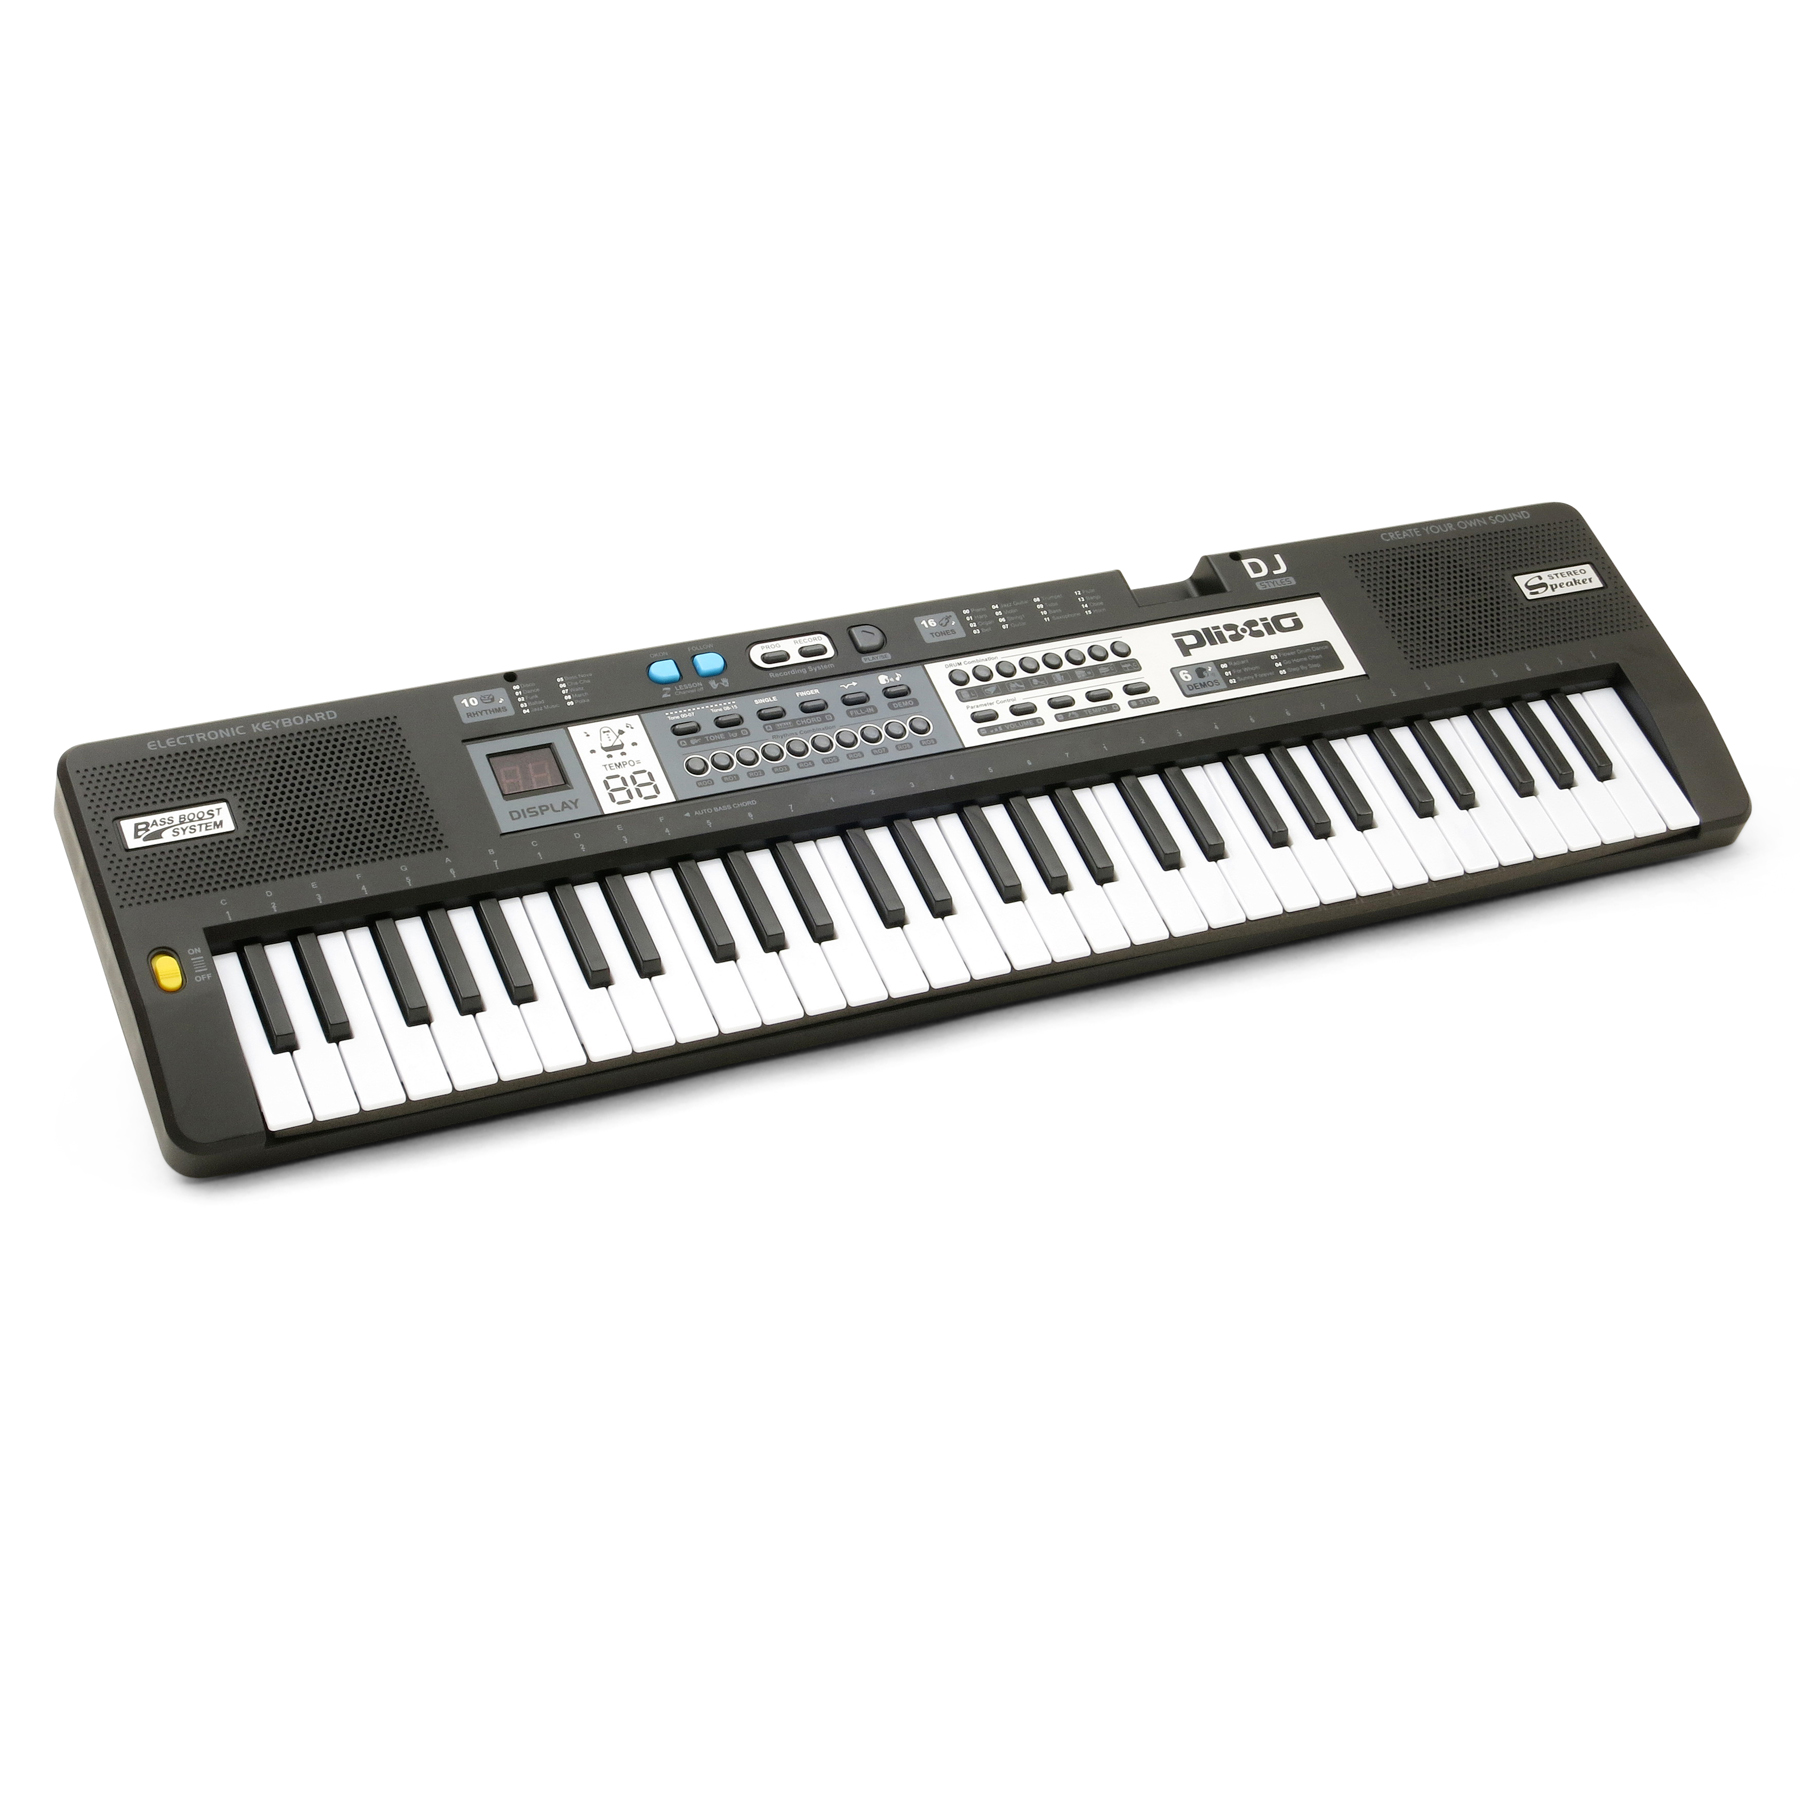 Plixio 61 Key Mid-Size Electric Piano Keyboard with Electronic Music Lesson Mode & Adapter